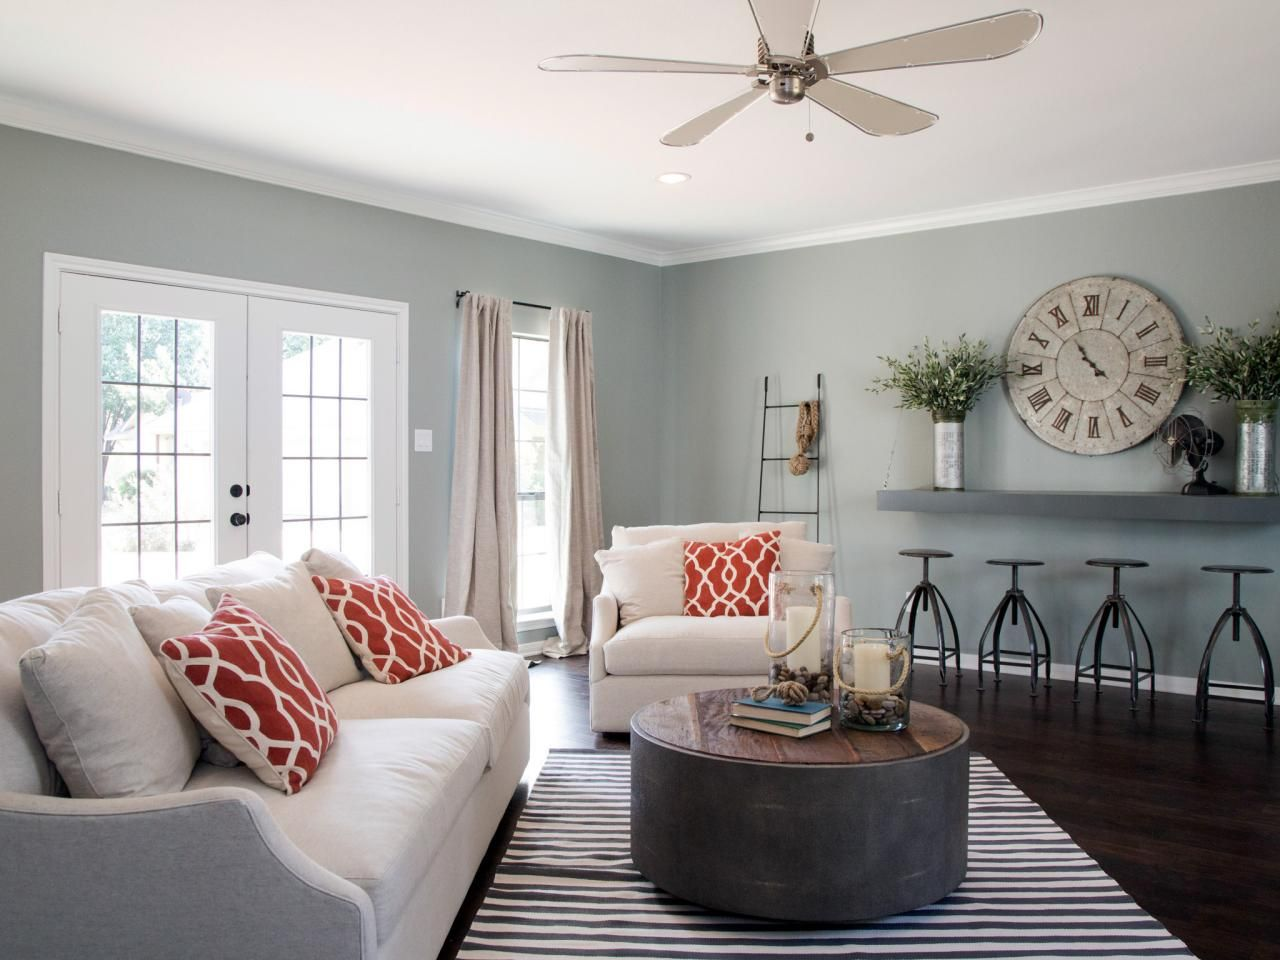 hgtvs fixer upper has for good reason taken the design world by storm - Hgtv Living Room Paint Colors